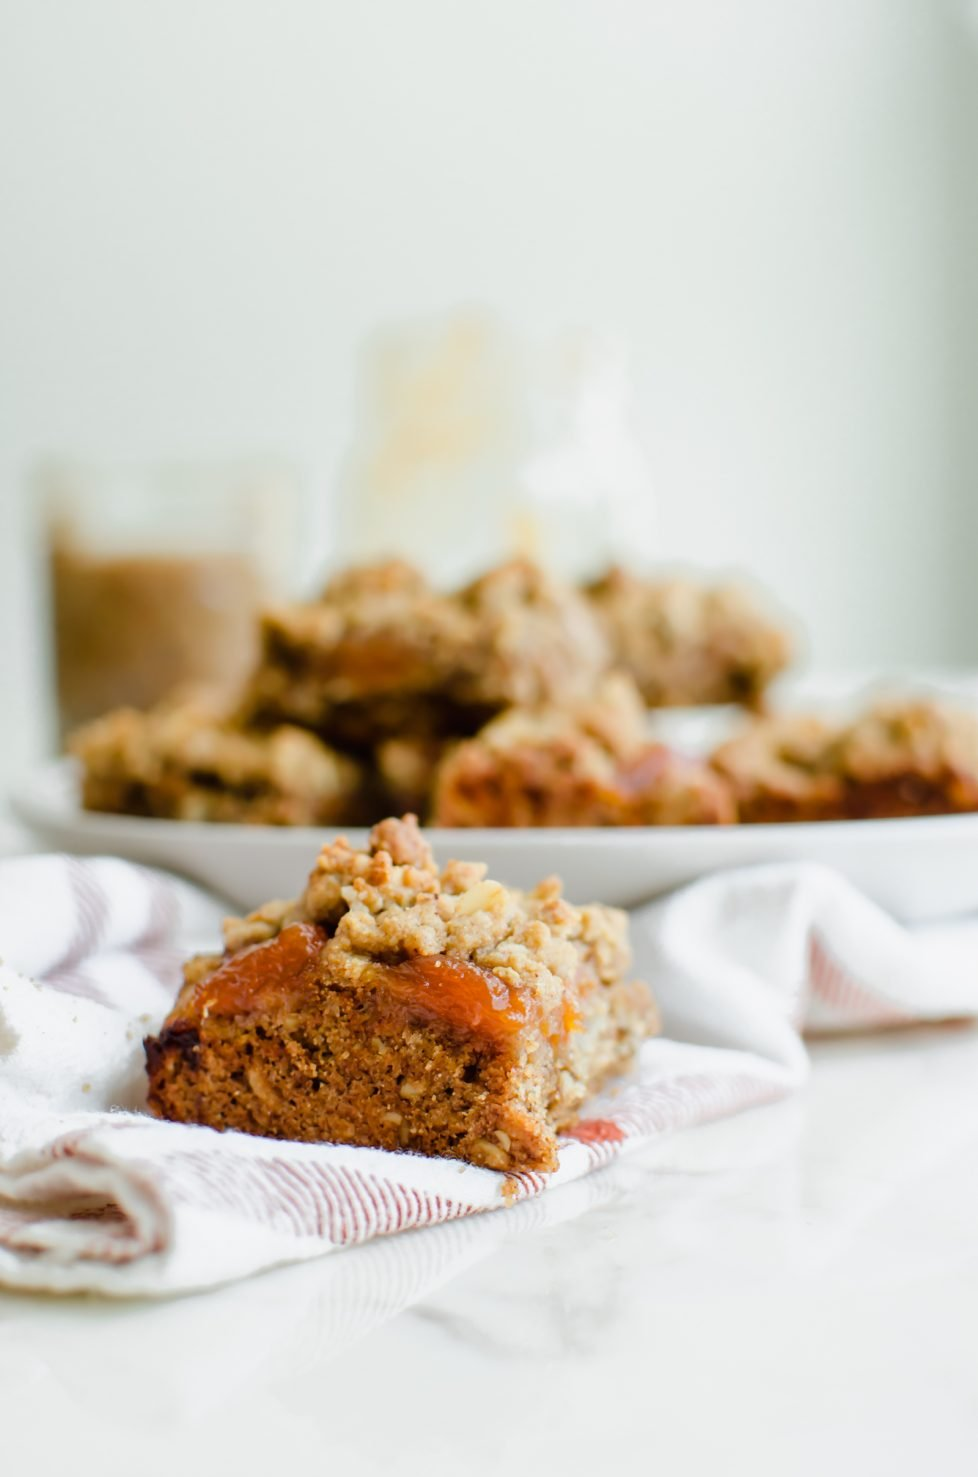 A side shot of a Pecan Butter and Peach Jam Crumble Bar sitting on a plaid kitchen towel with a white plate of bars in the background.